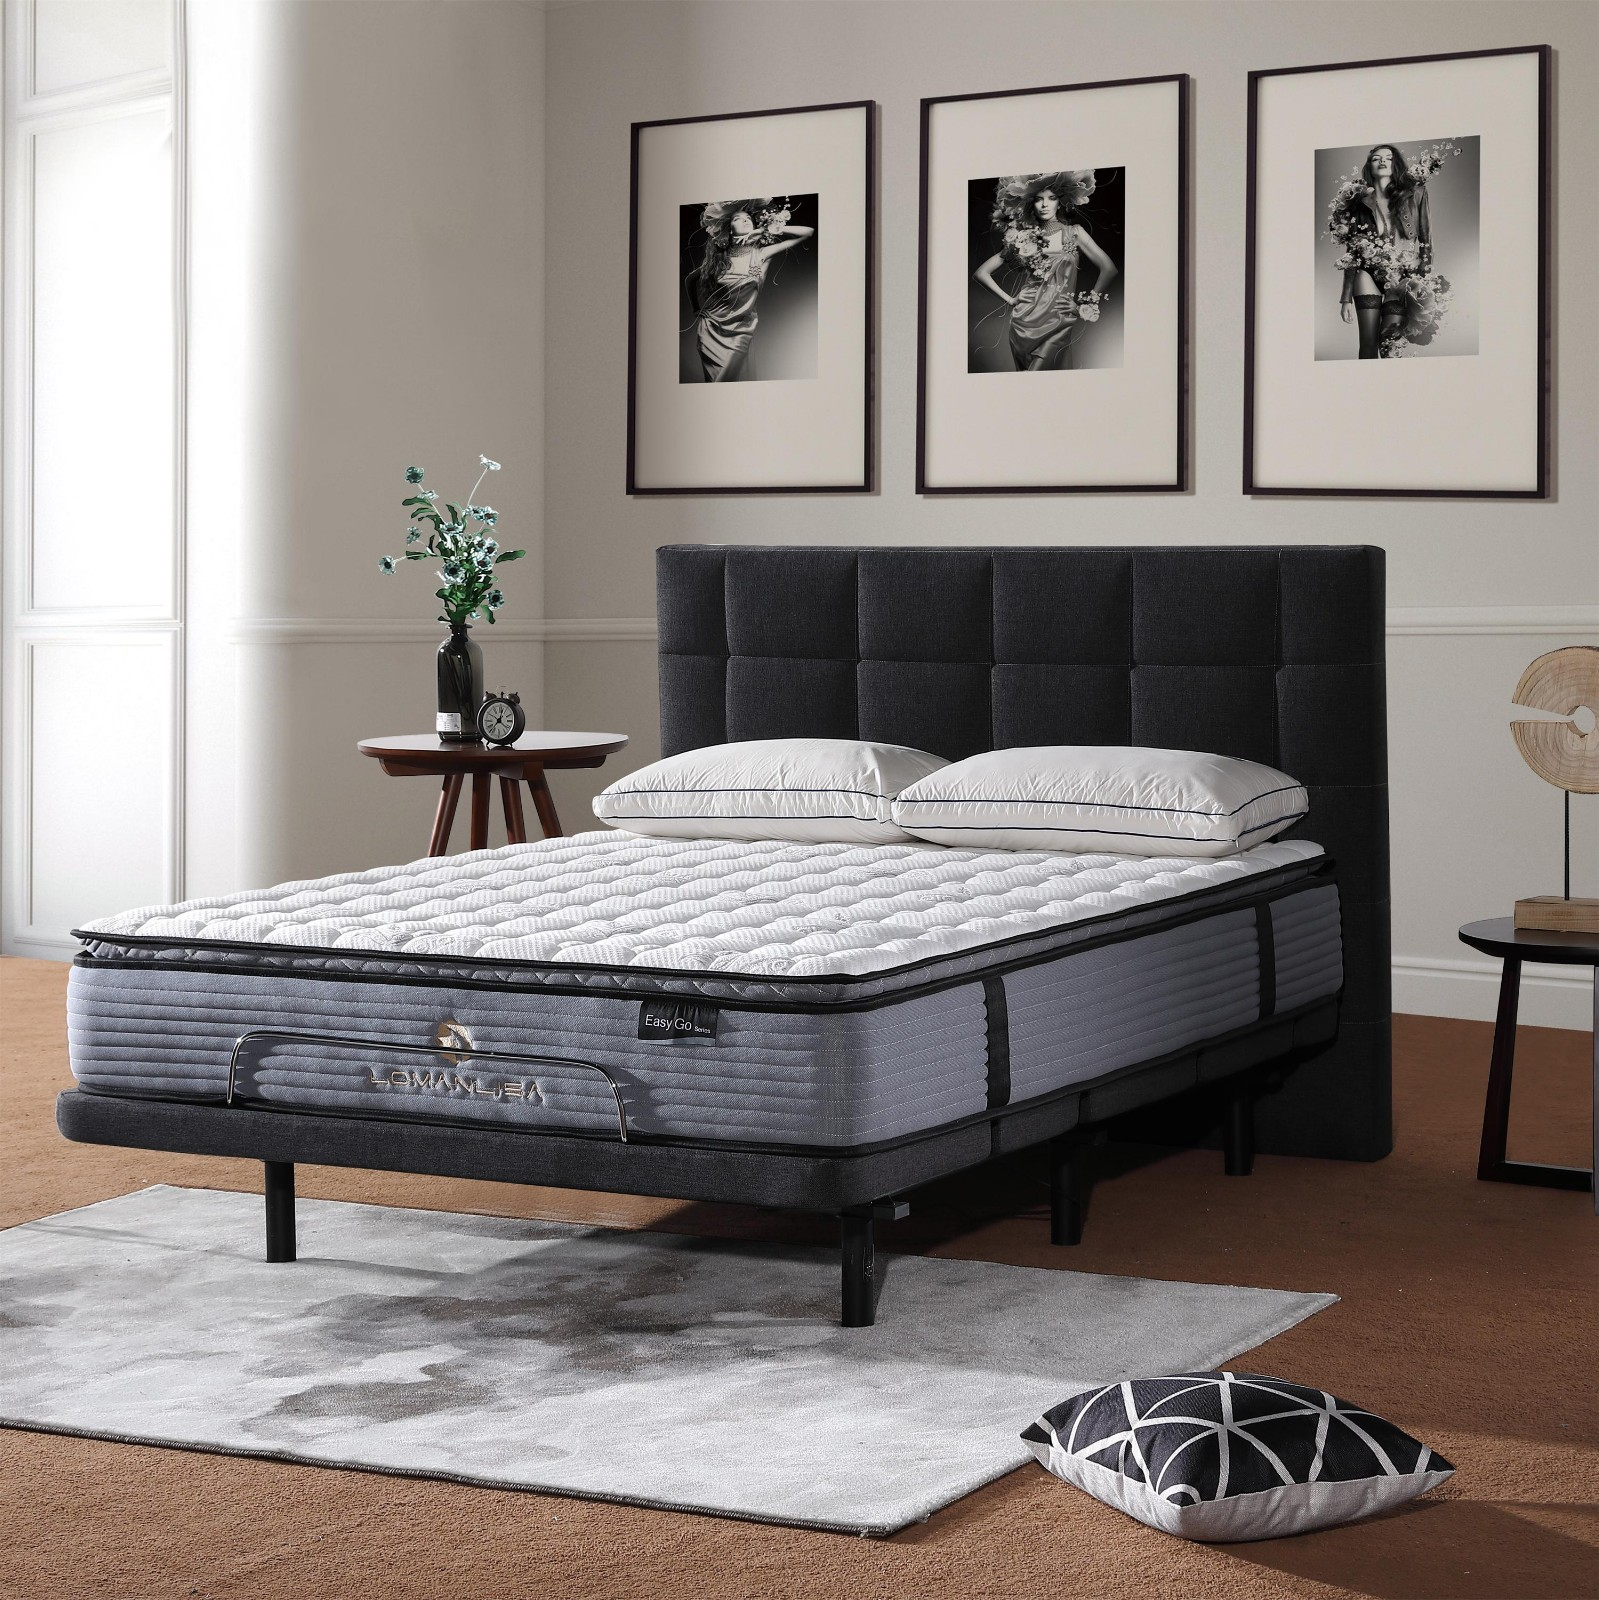 double queen mattress in a box dacron for home JLH-11